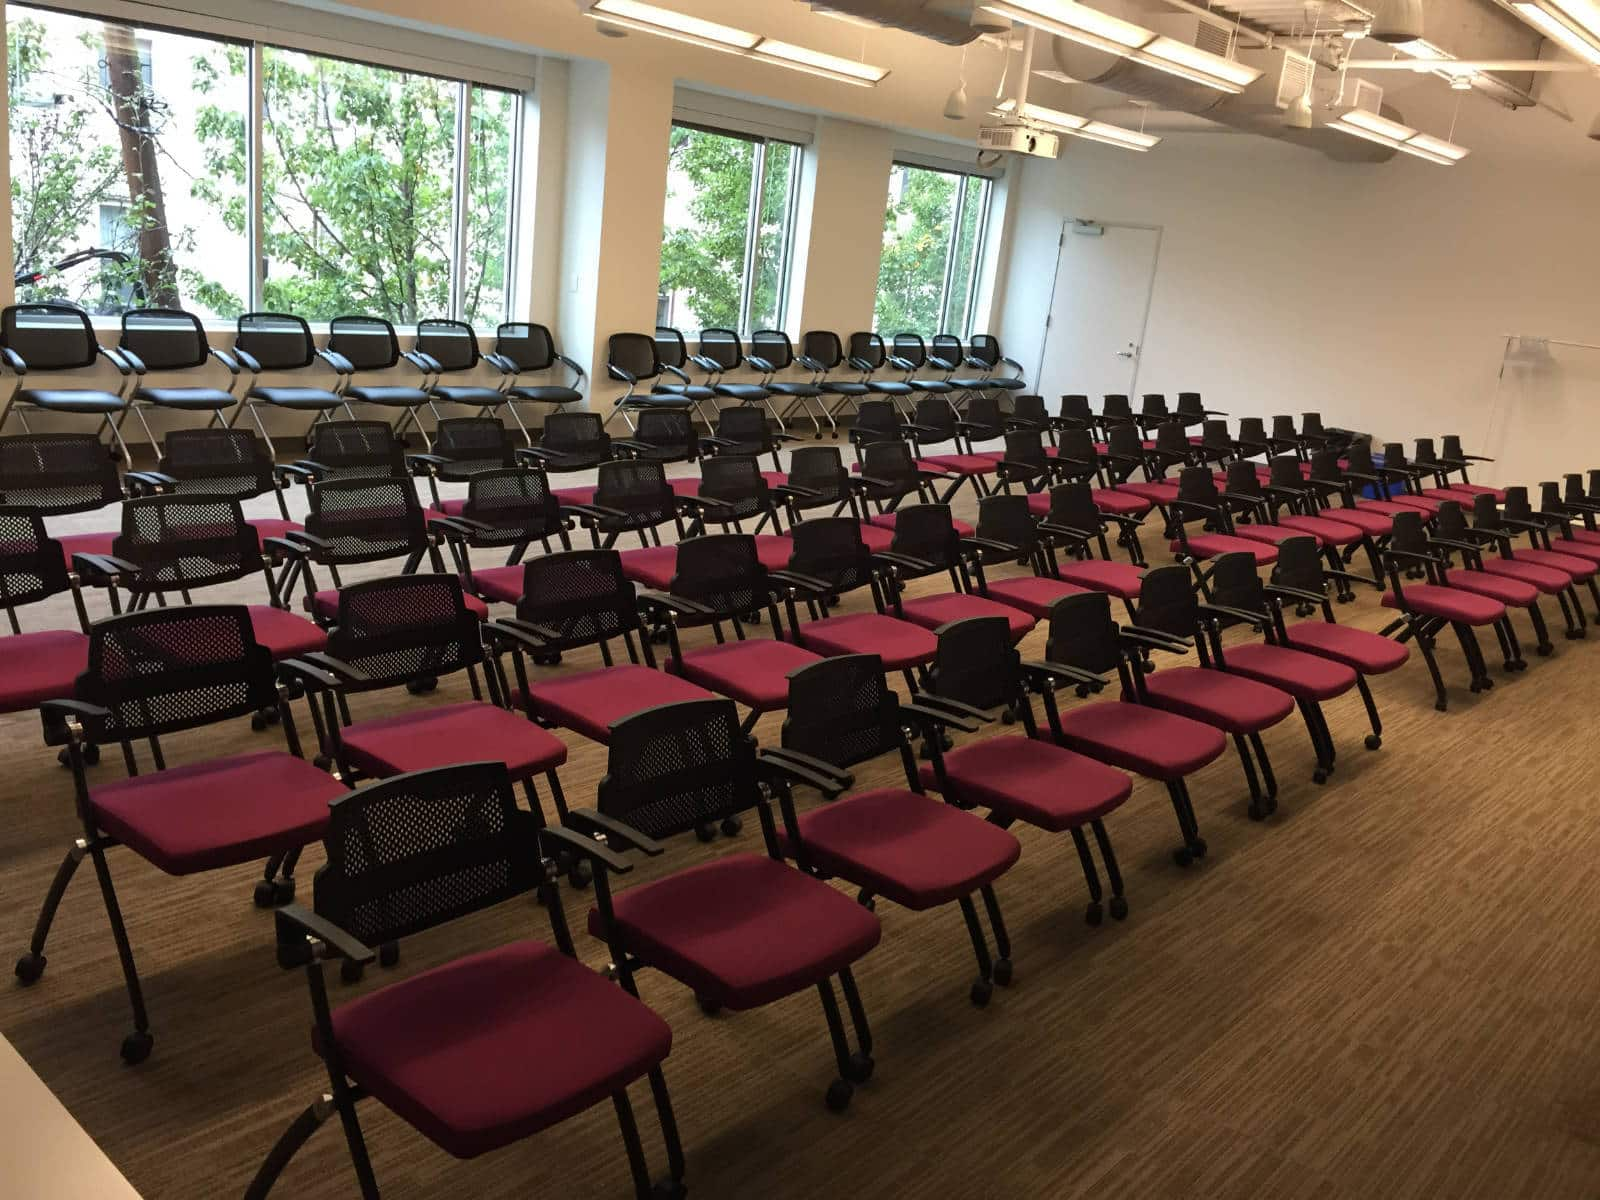 Five rows of chars lined up in a classroom or theatre style arrangement in NGIN Workplace's conference room.